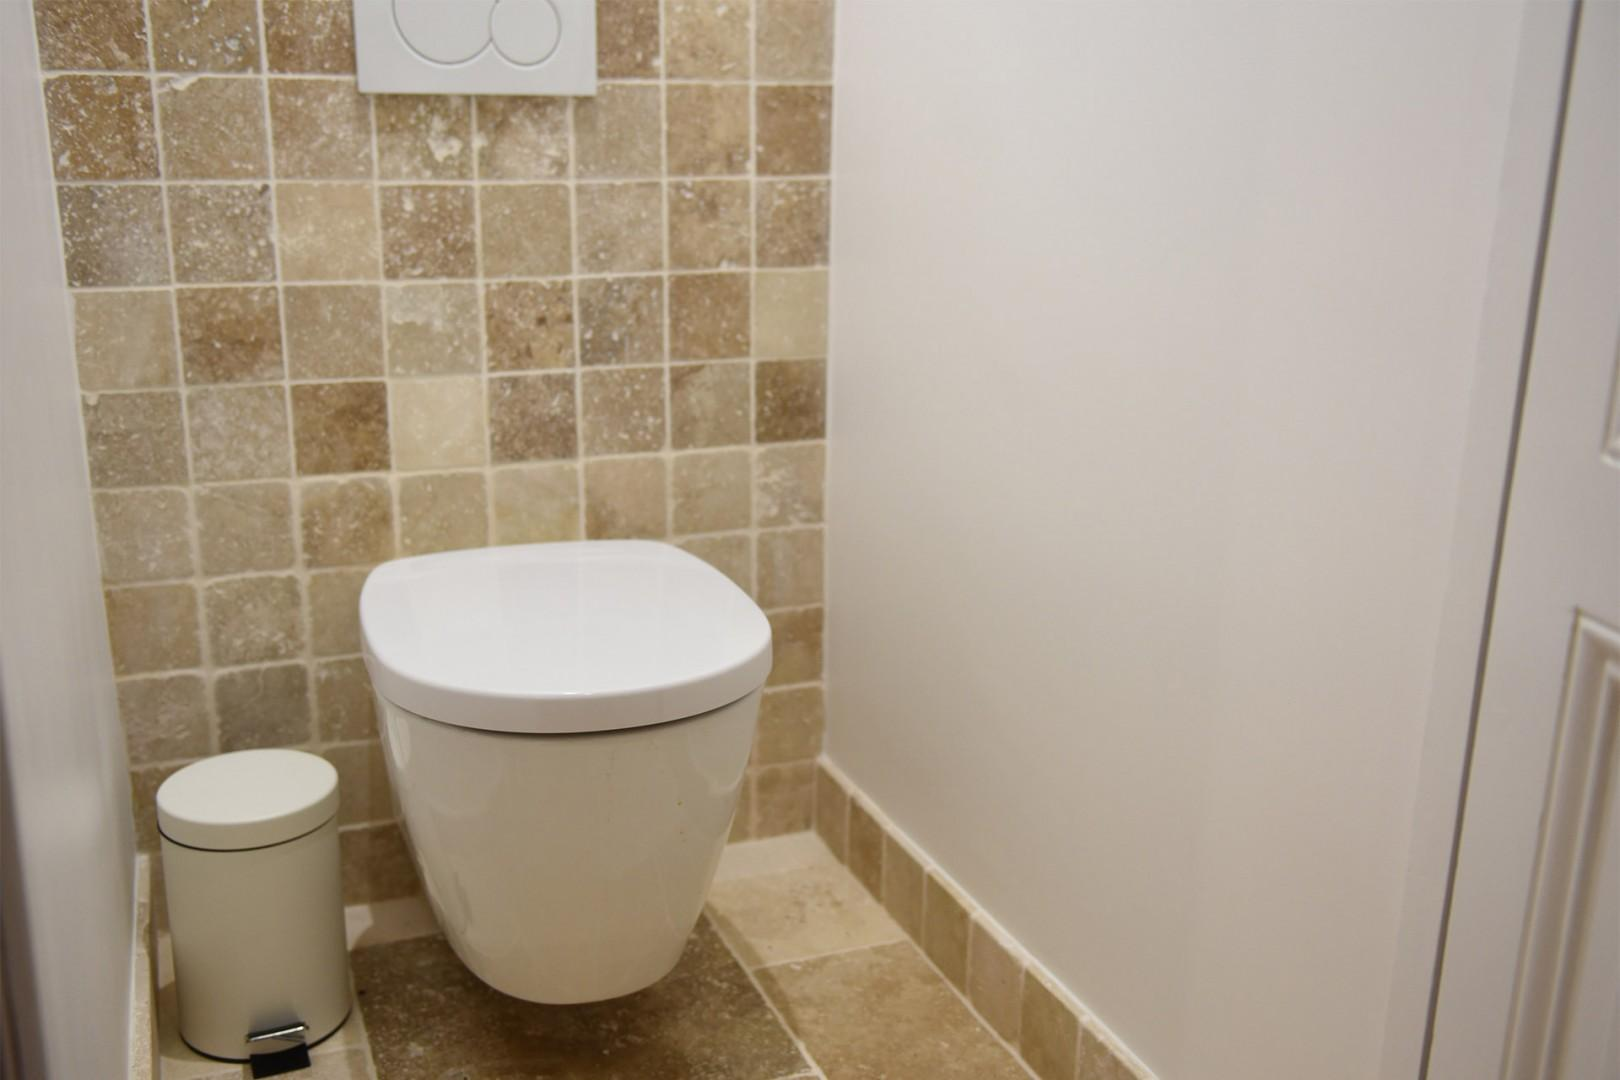 There is a separate half bath with toilet.